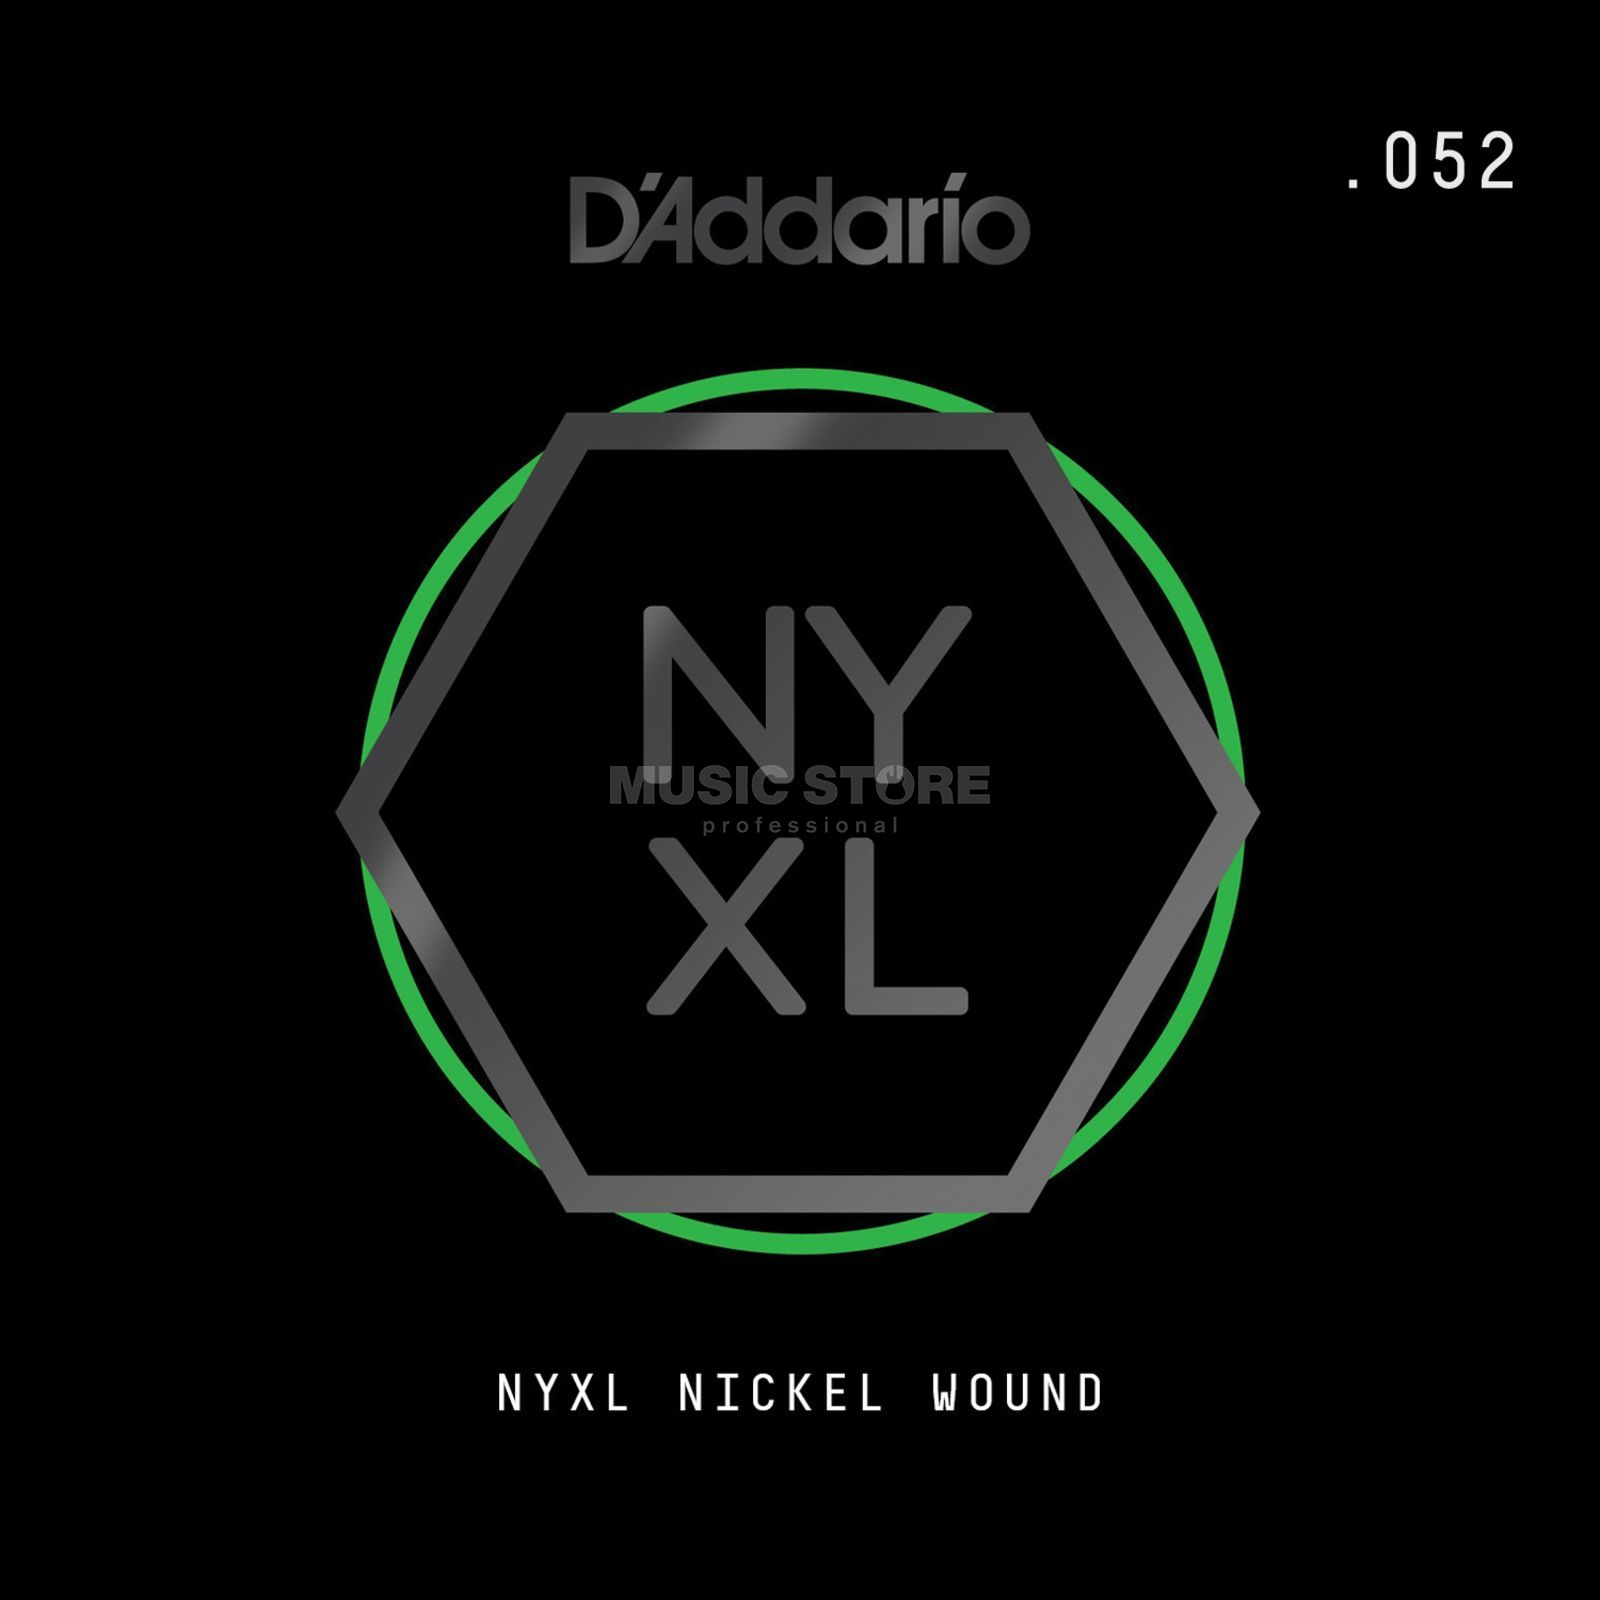 D'Addario NYNW052 Single String Nickel Wound Immagine prodotto